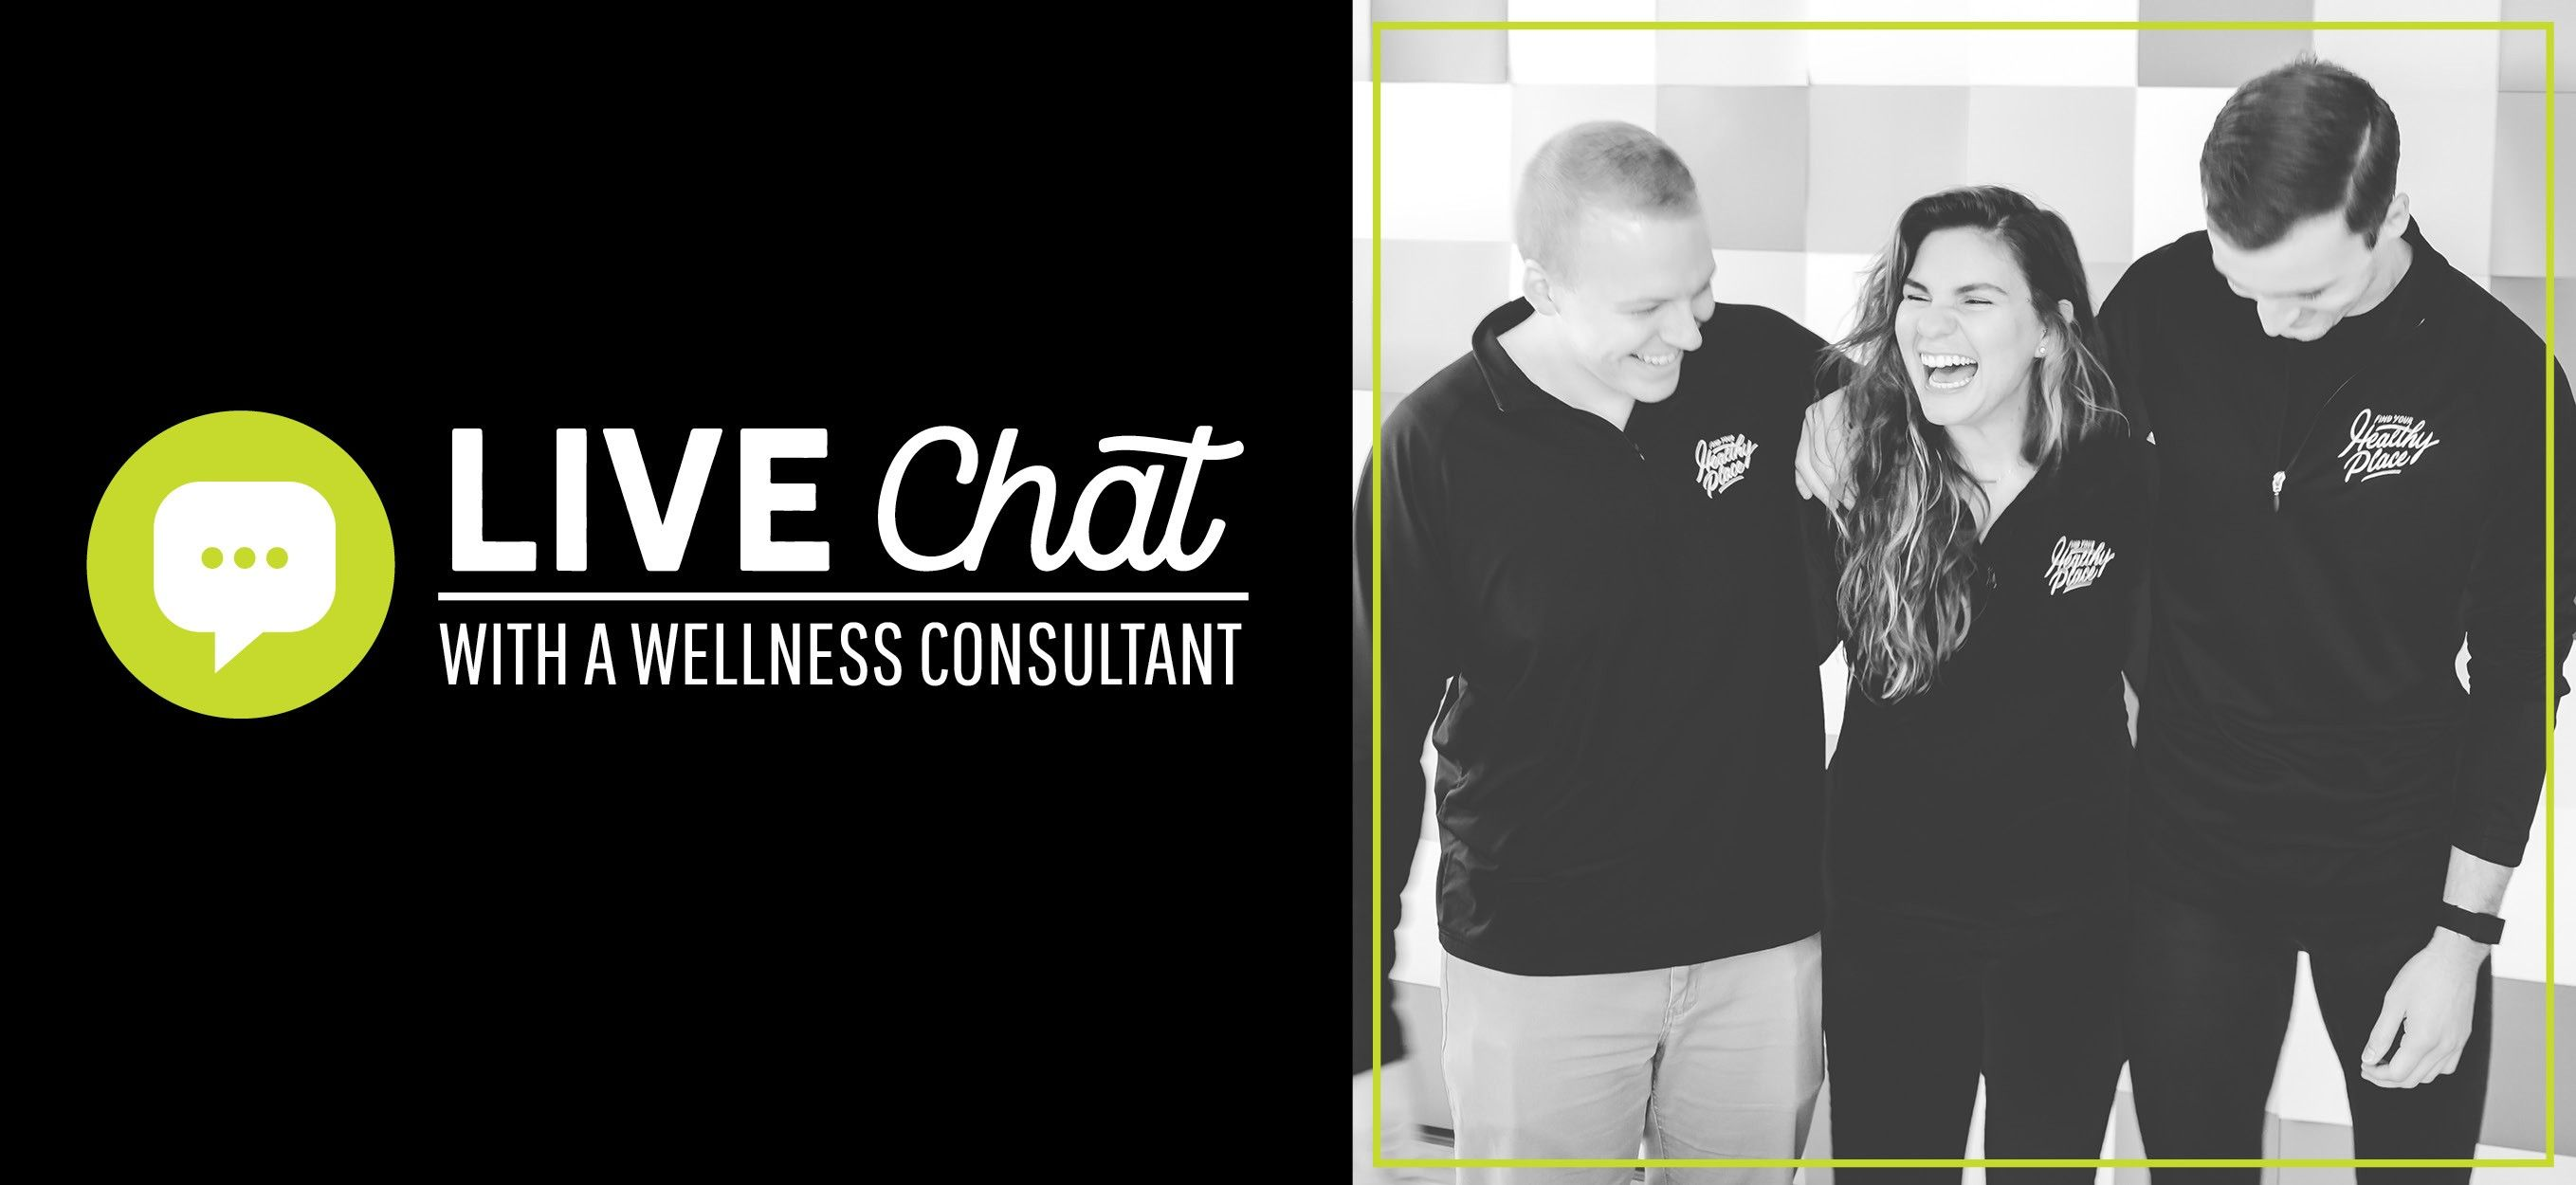 Live Chat with a wellness consultant